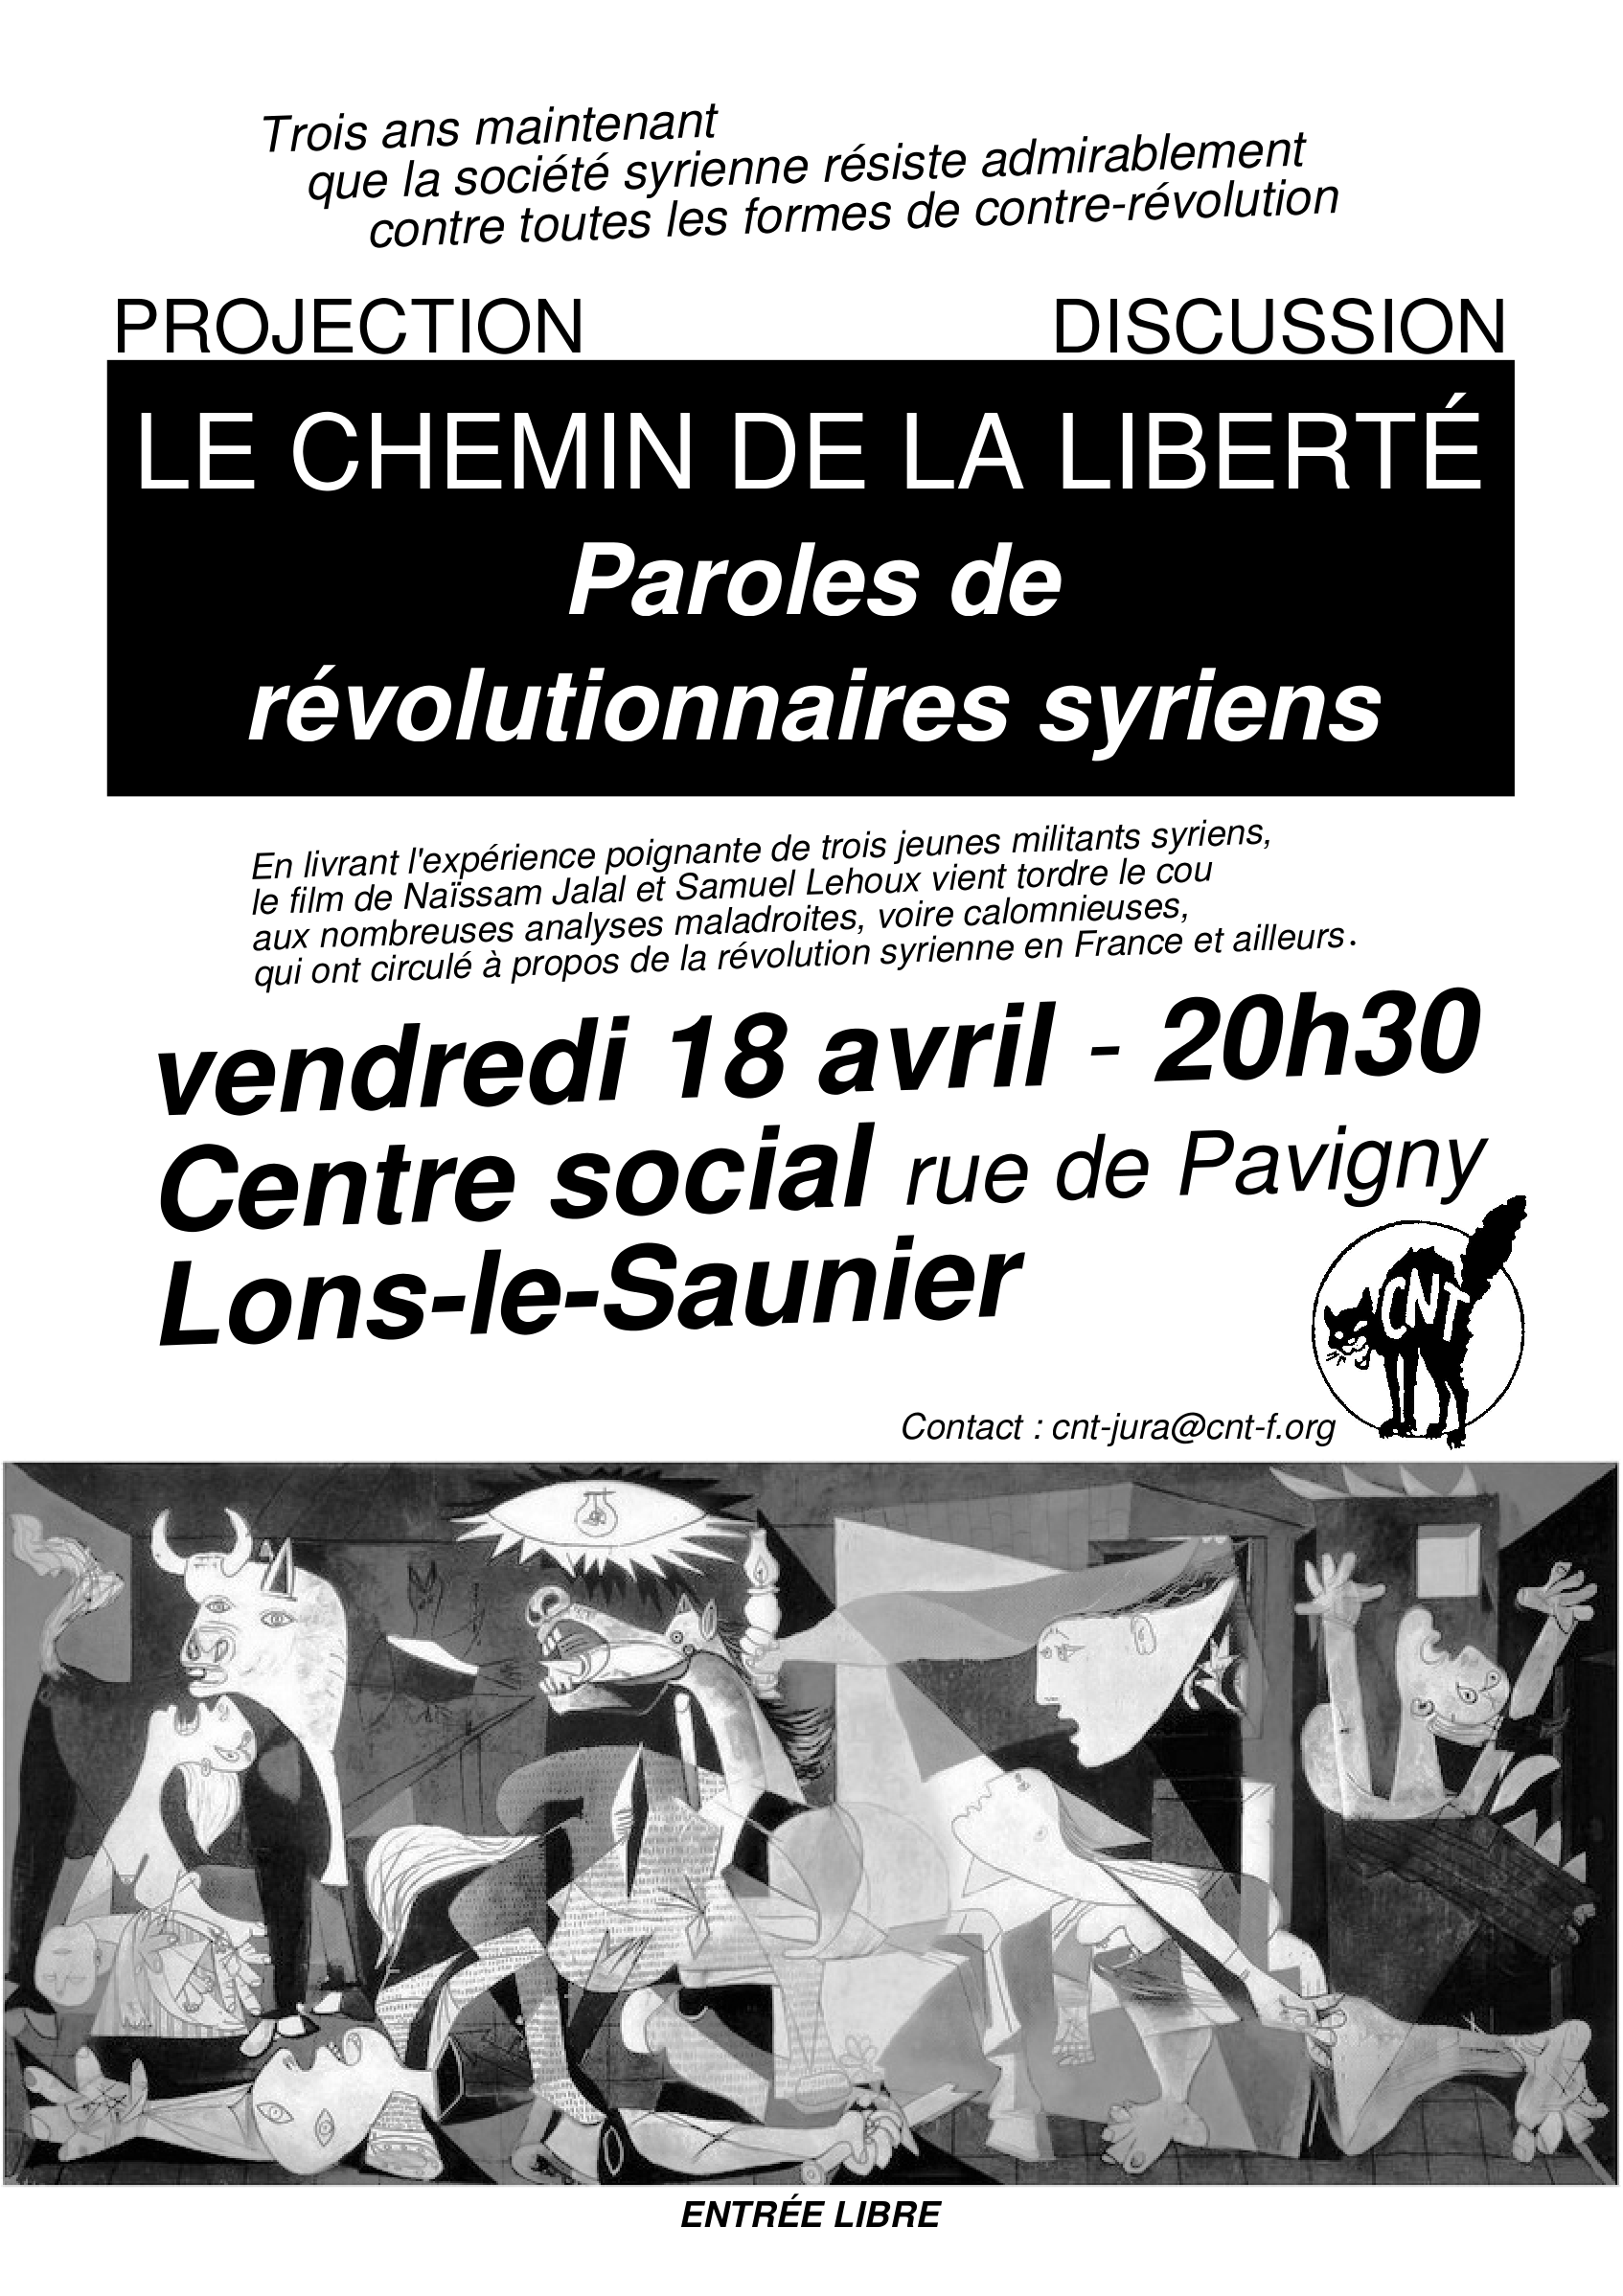 http://juralib.noblogs.org/files/2014/04/Soiree-Syrie.png